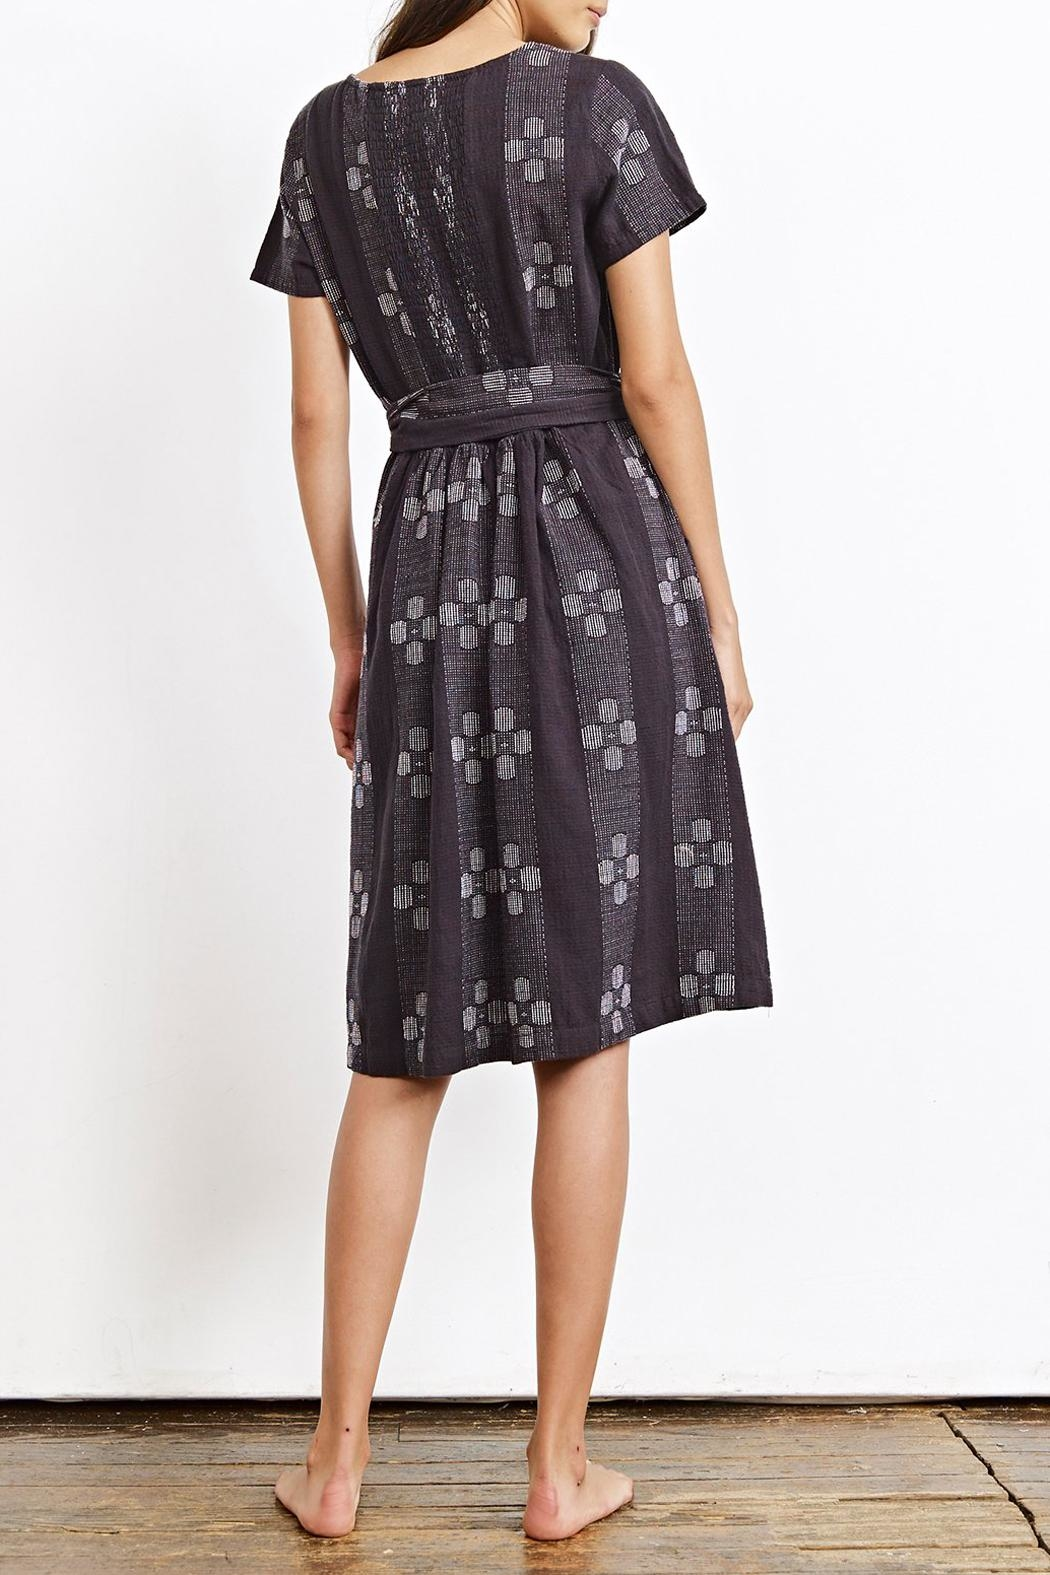 Ace & Jig Bonnie Licorice Dress - Front Full Image